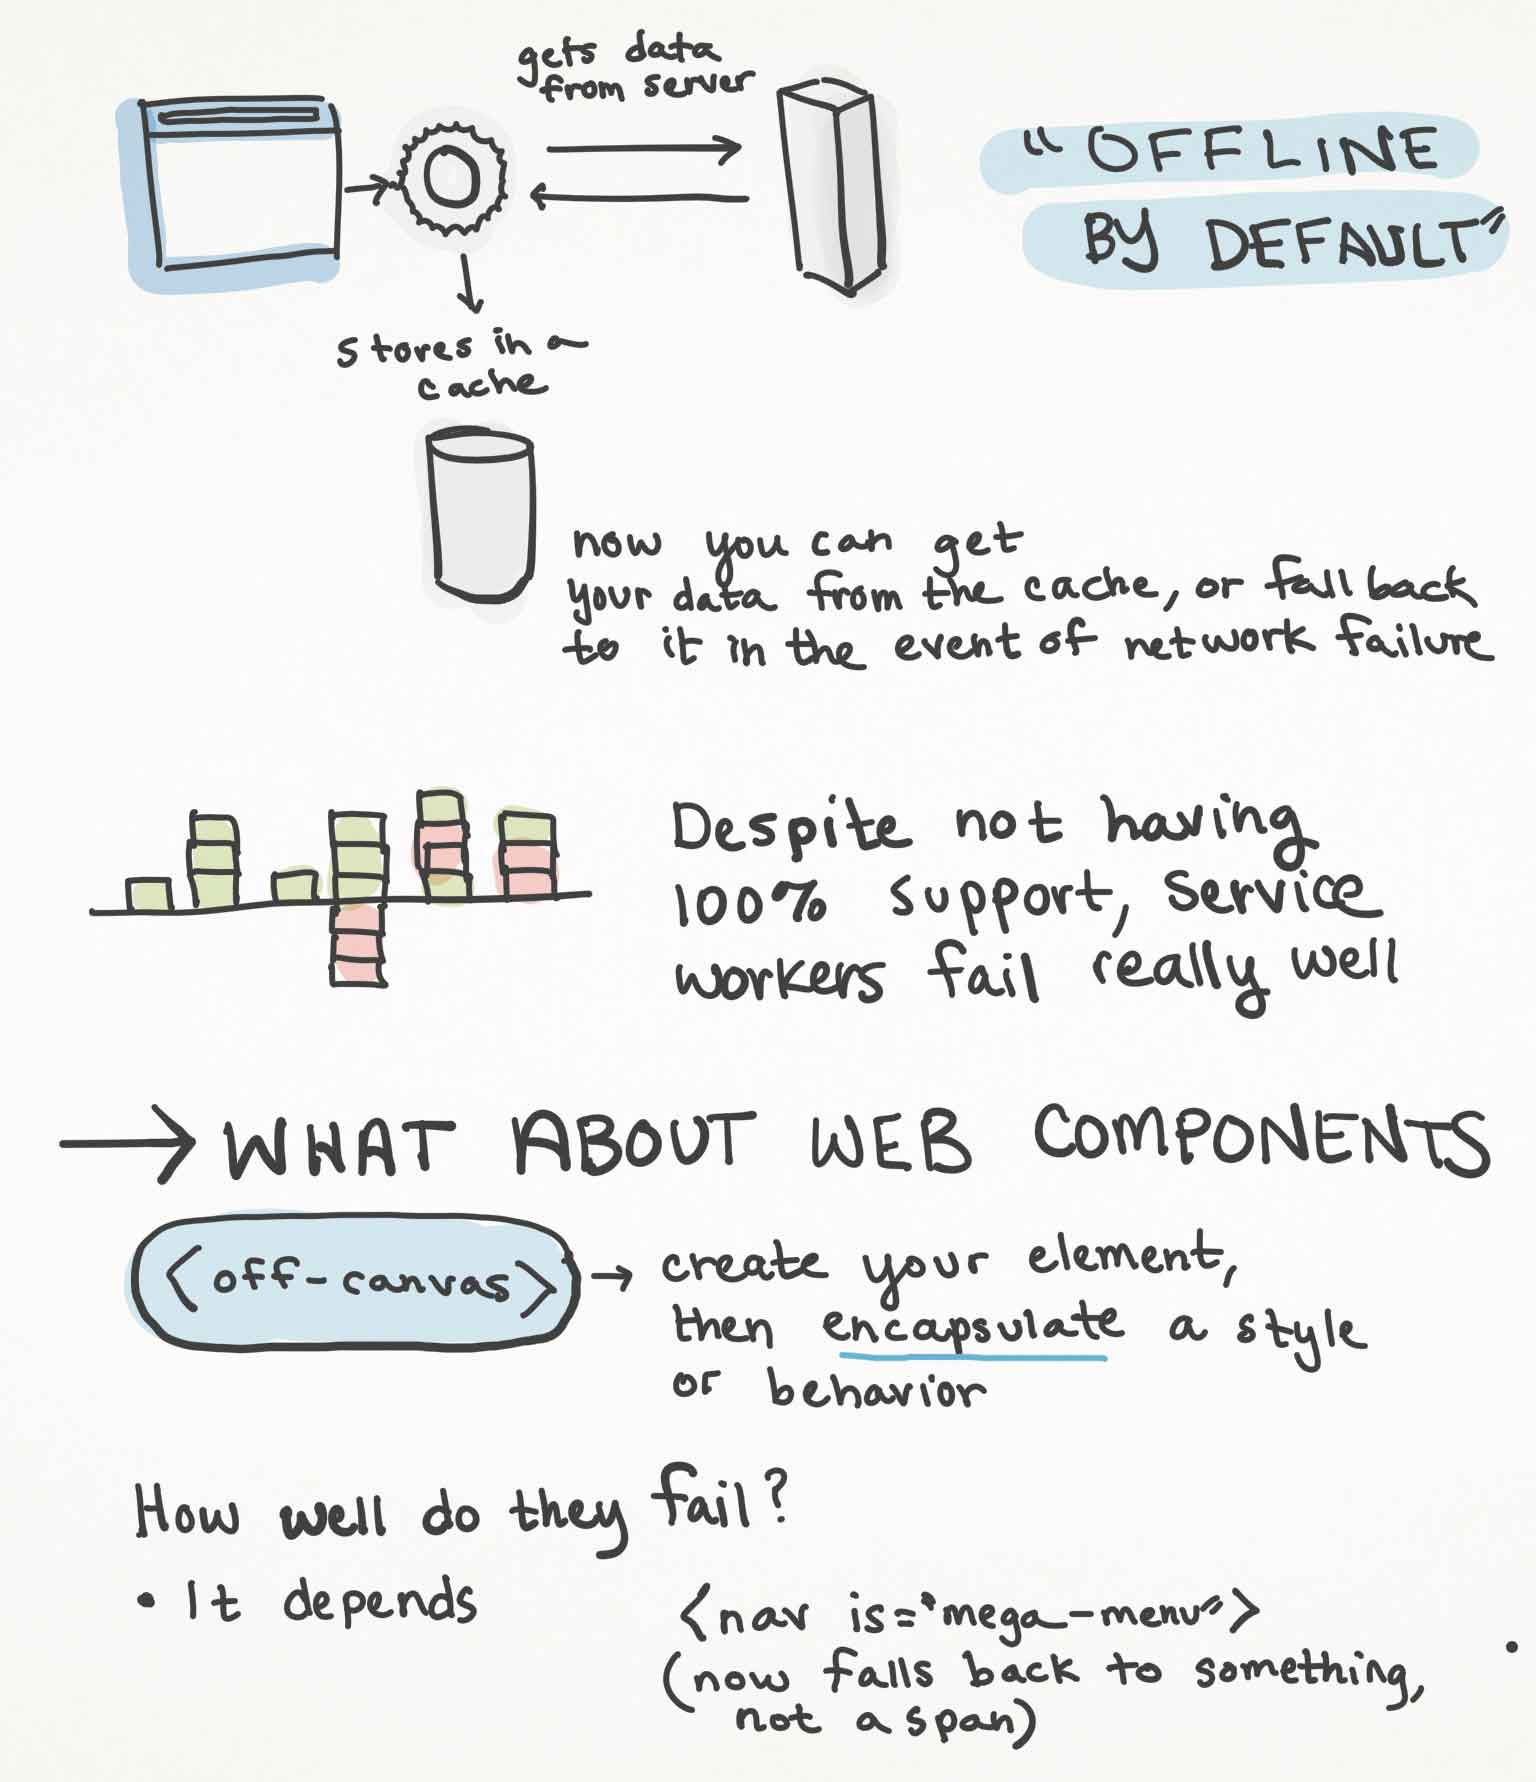 Sketchnotes page 3 from Jeremy Keith's talk